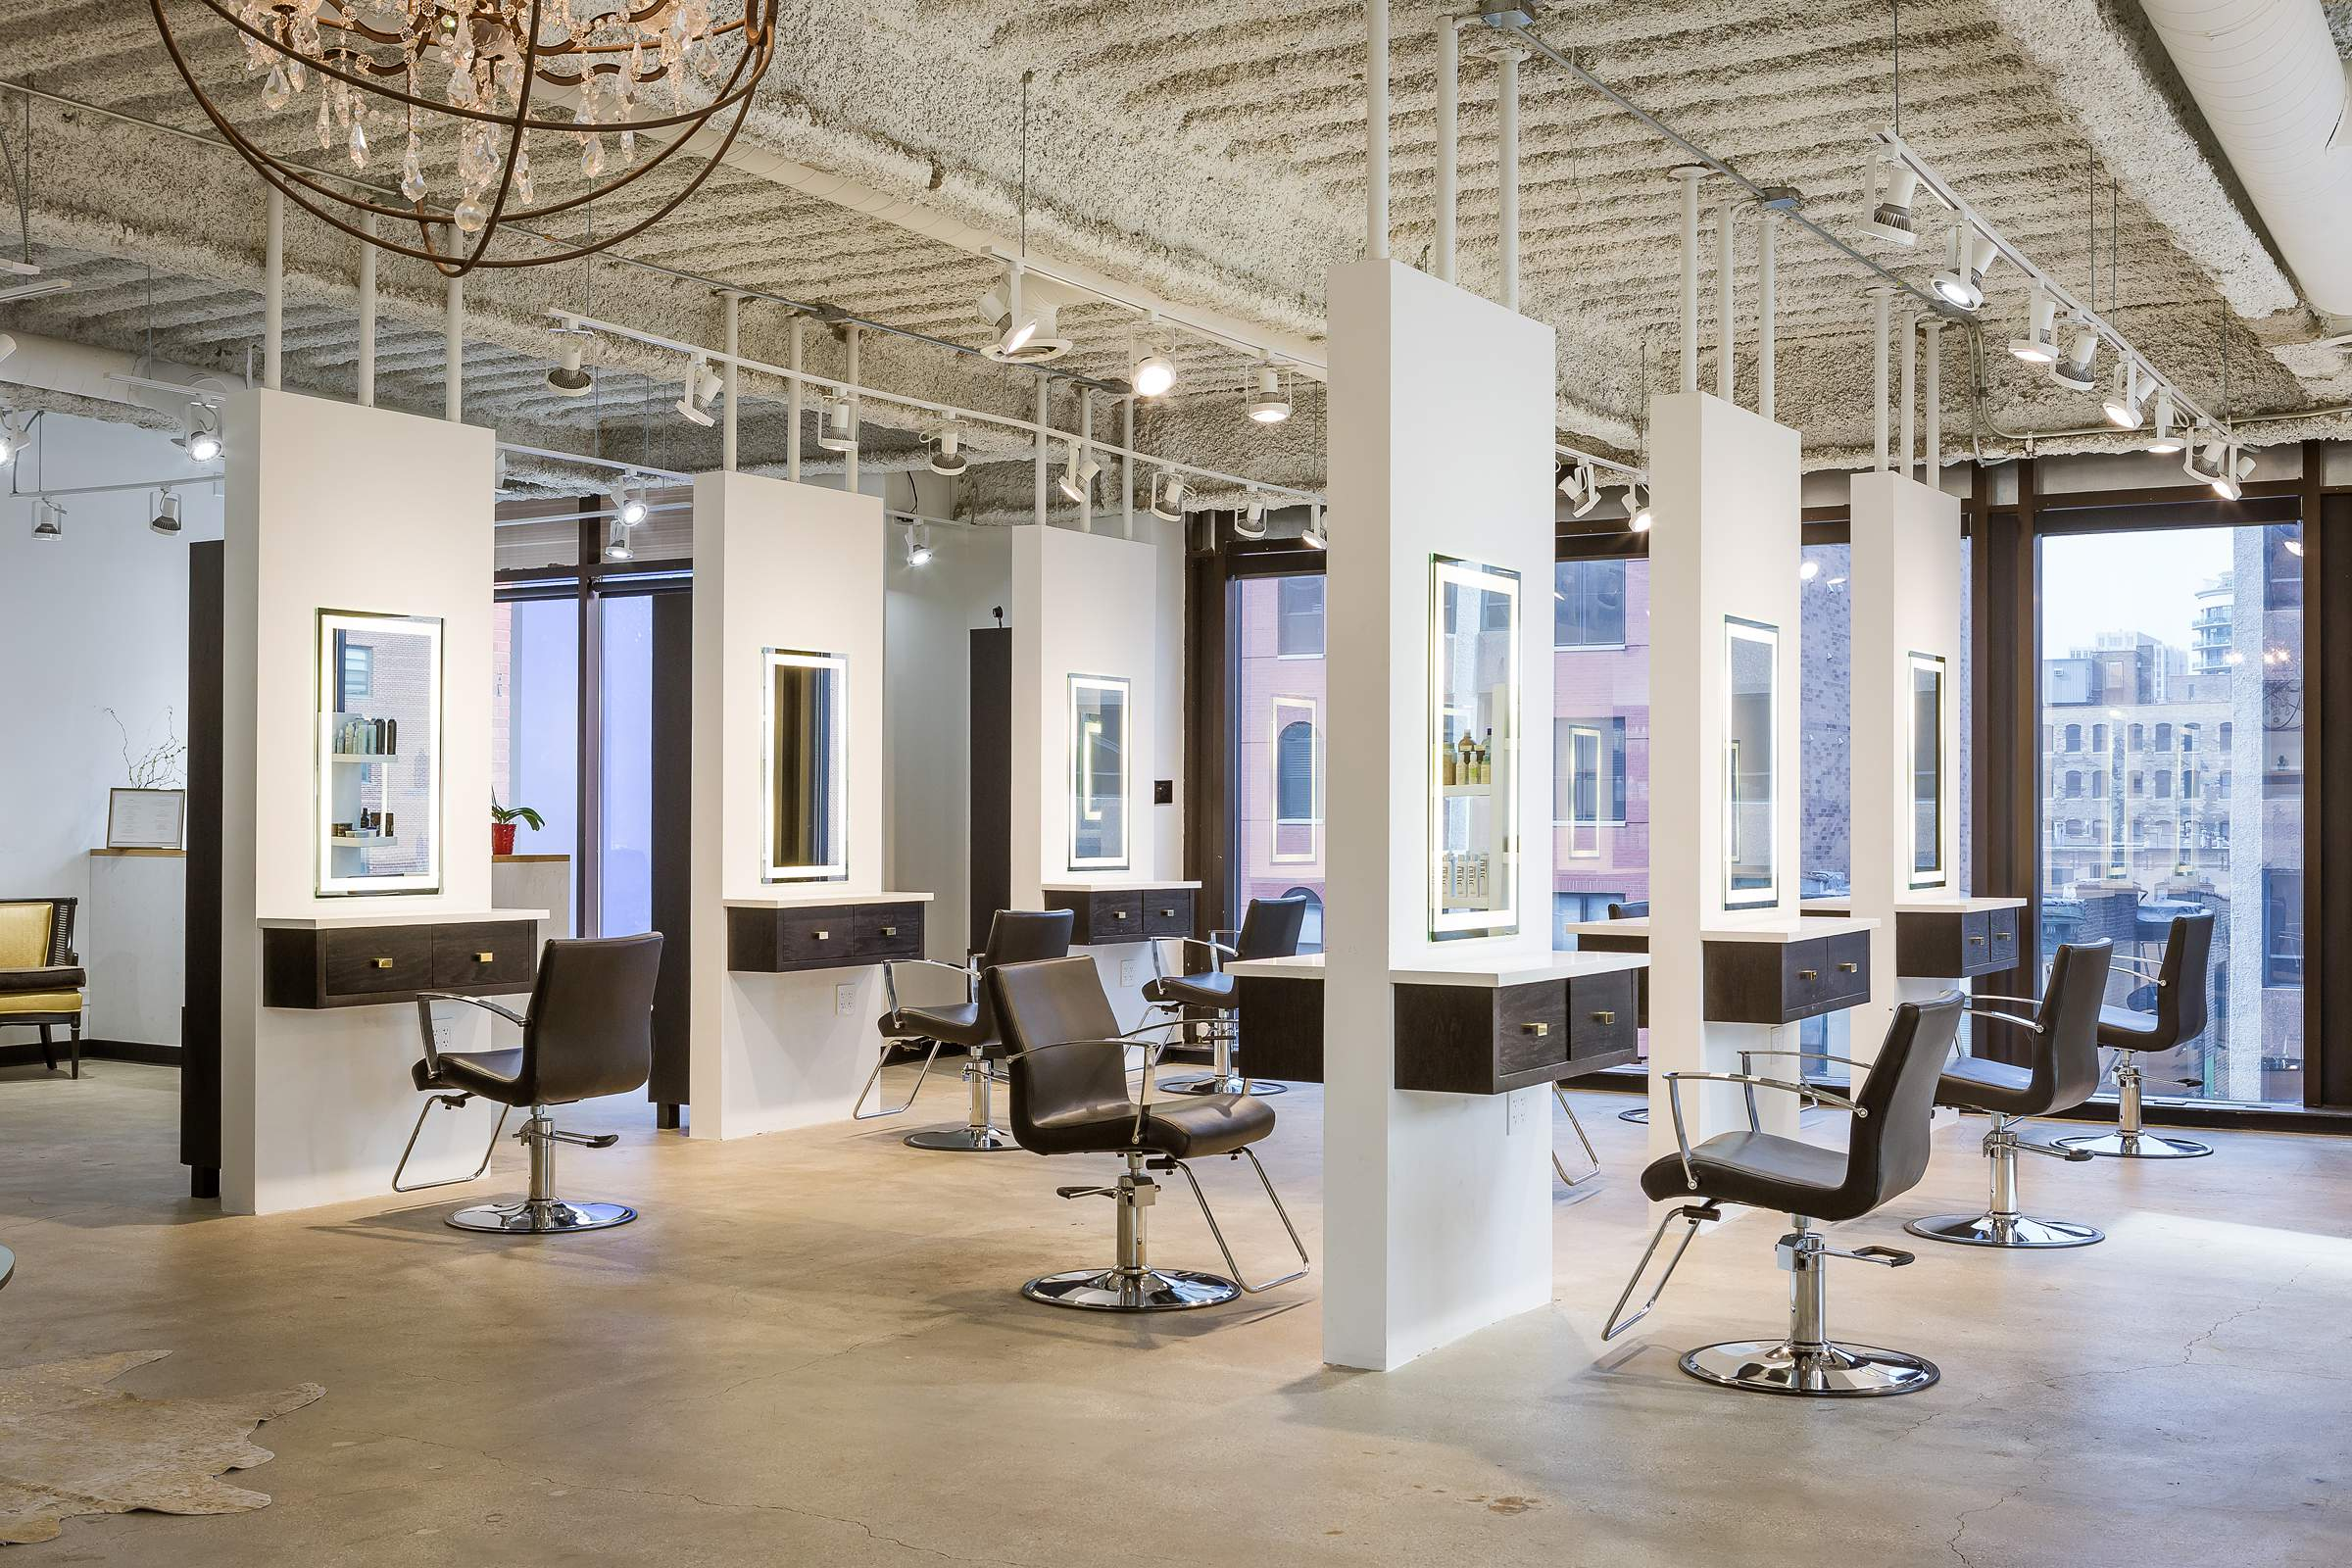 Arsova Salon Chicago Downtown Interior Photography 360 Google VIrtual Tour - 48